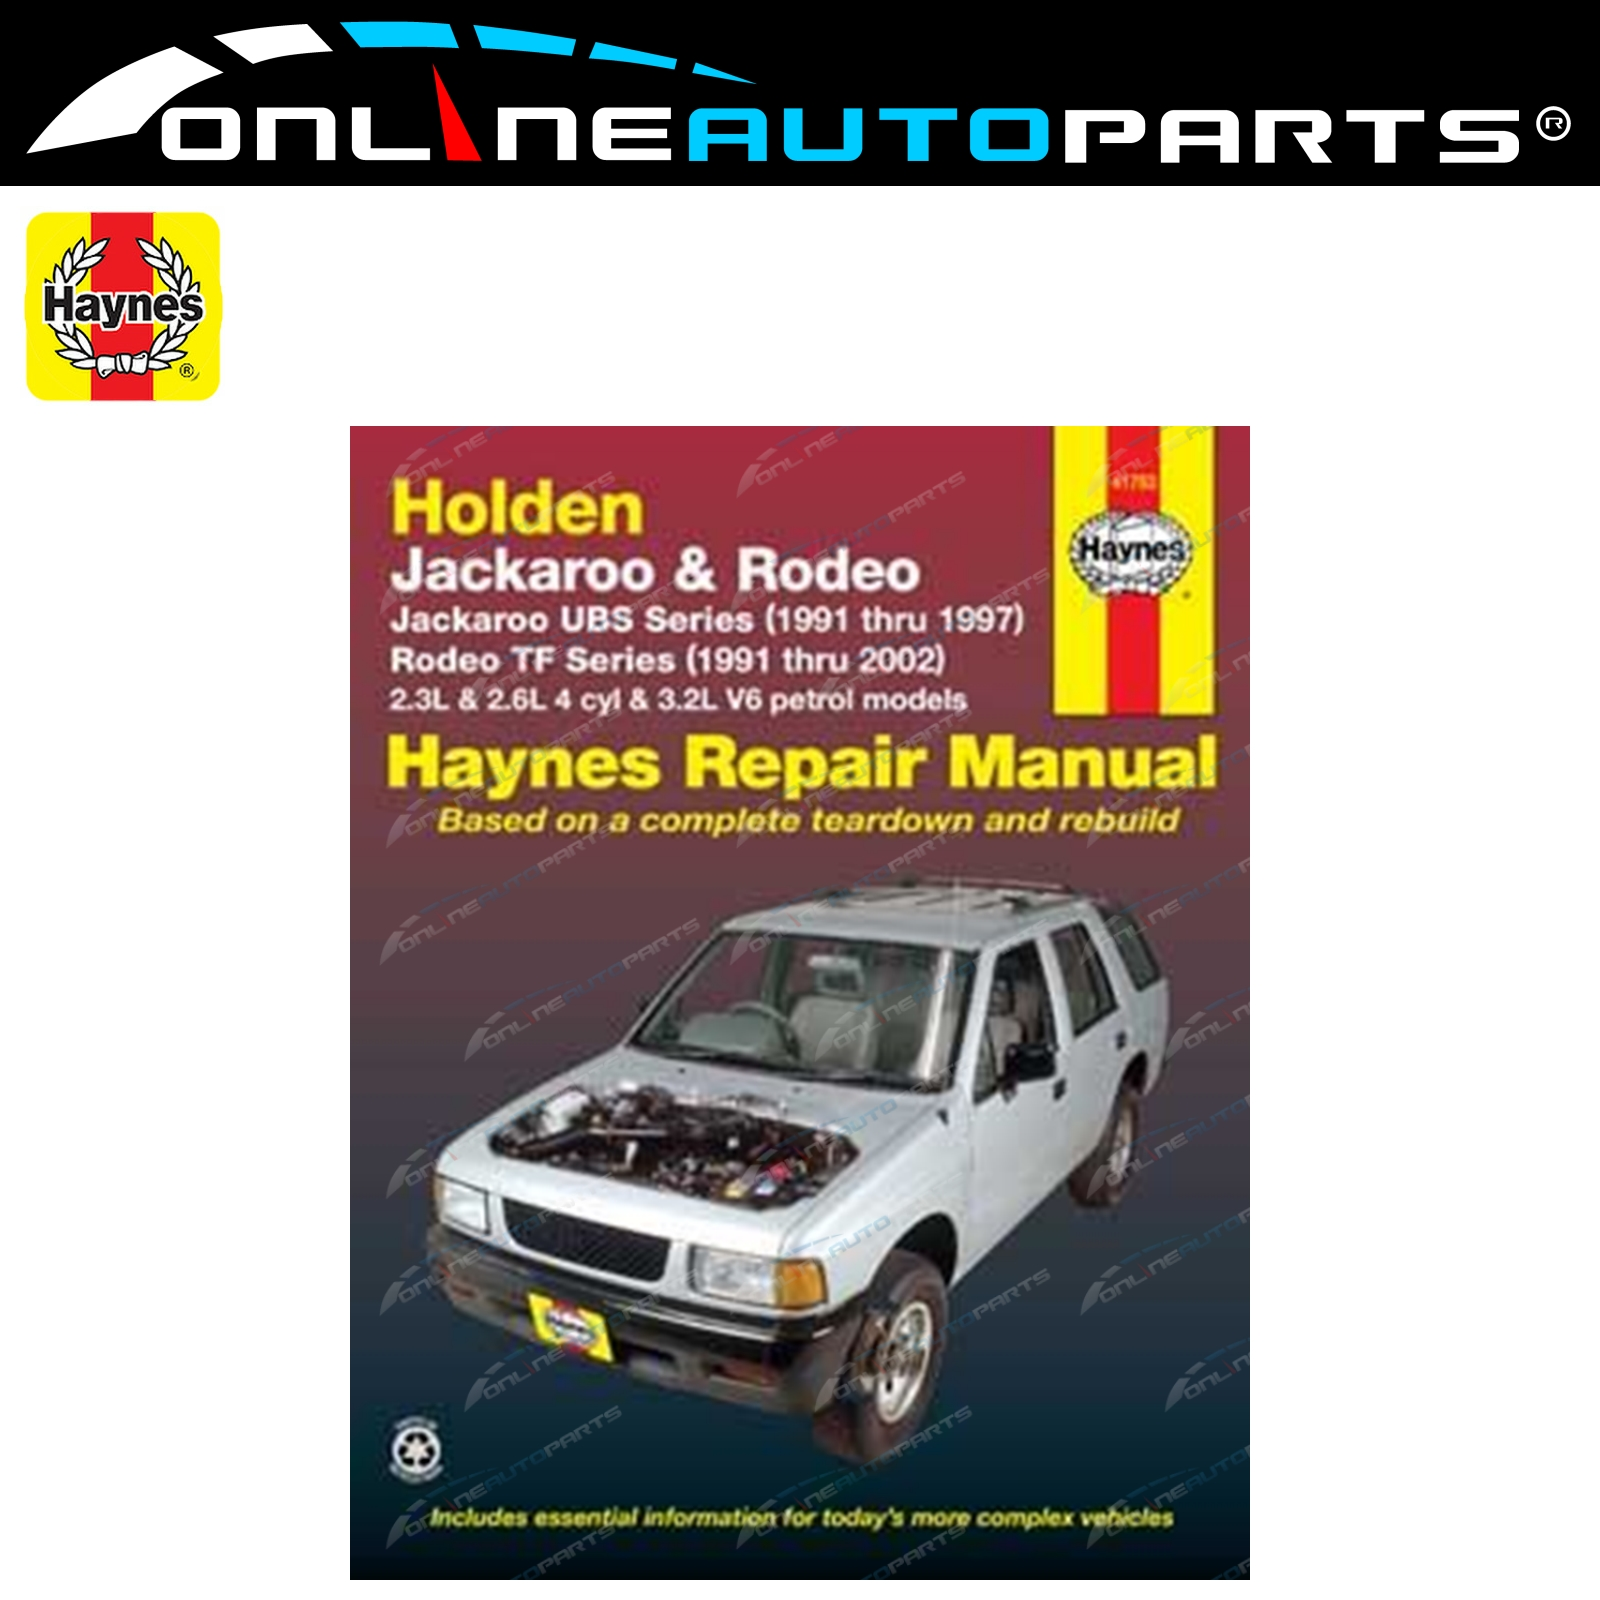 Haynes Car Repair Manual Book TF Rodeo TFR16 TFR17 TFR25 TFS17 TFS25  1991-2002